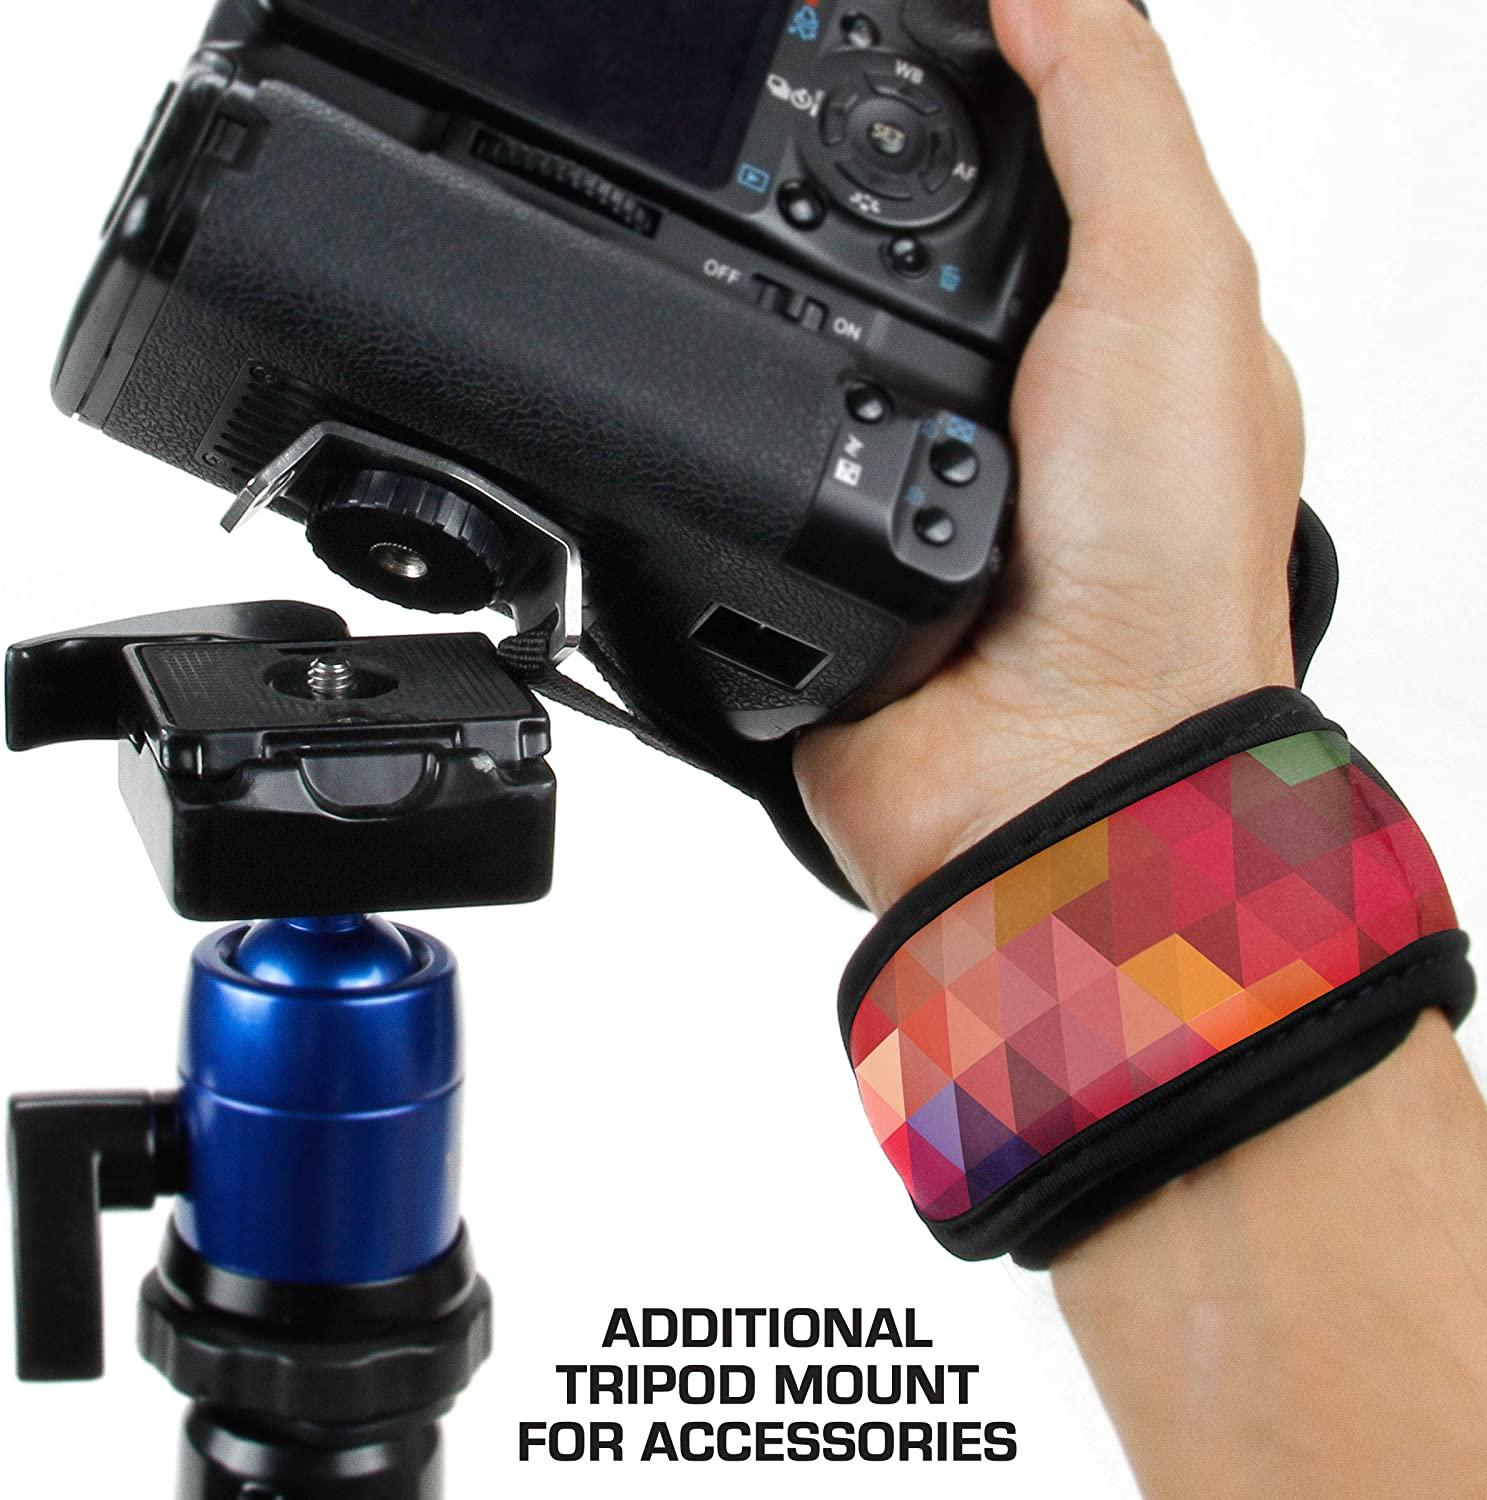 Point /& Shoot Cameras Mirrorless Compatible with Canon Sony and more DSLR Nikon USA GEAR Professional Camera Grip Hand Strap with Floral Neoprene Design and Metal Plate Fujifilm